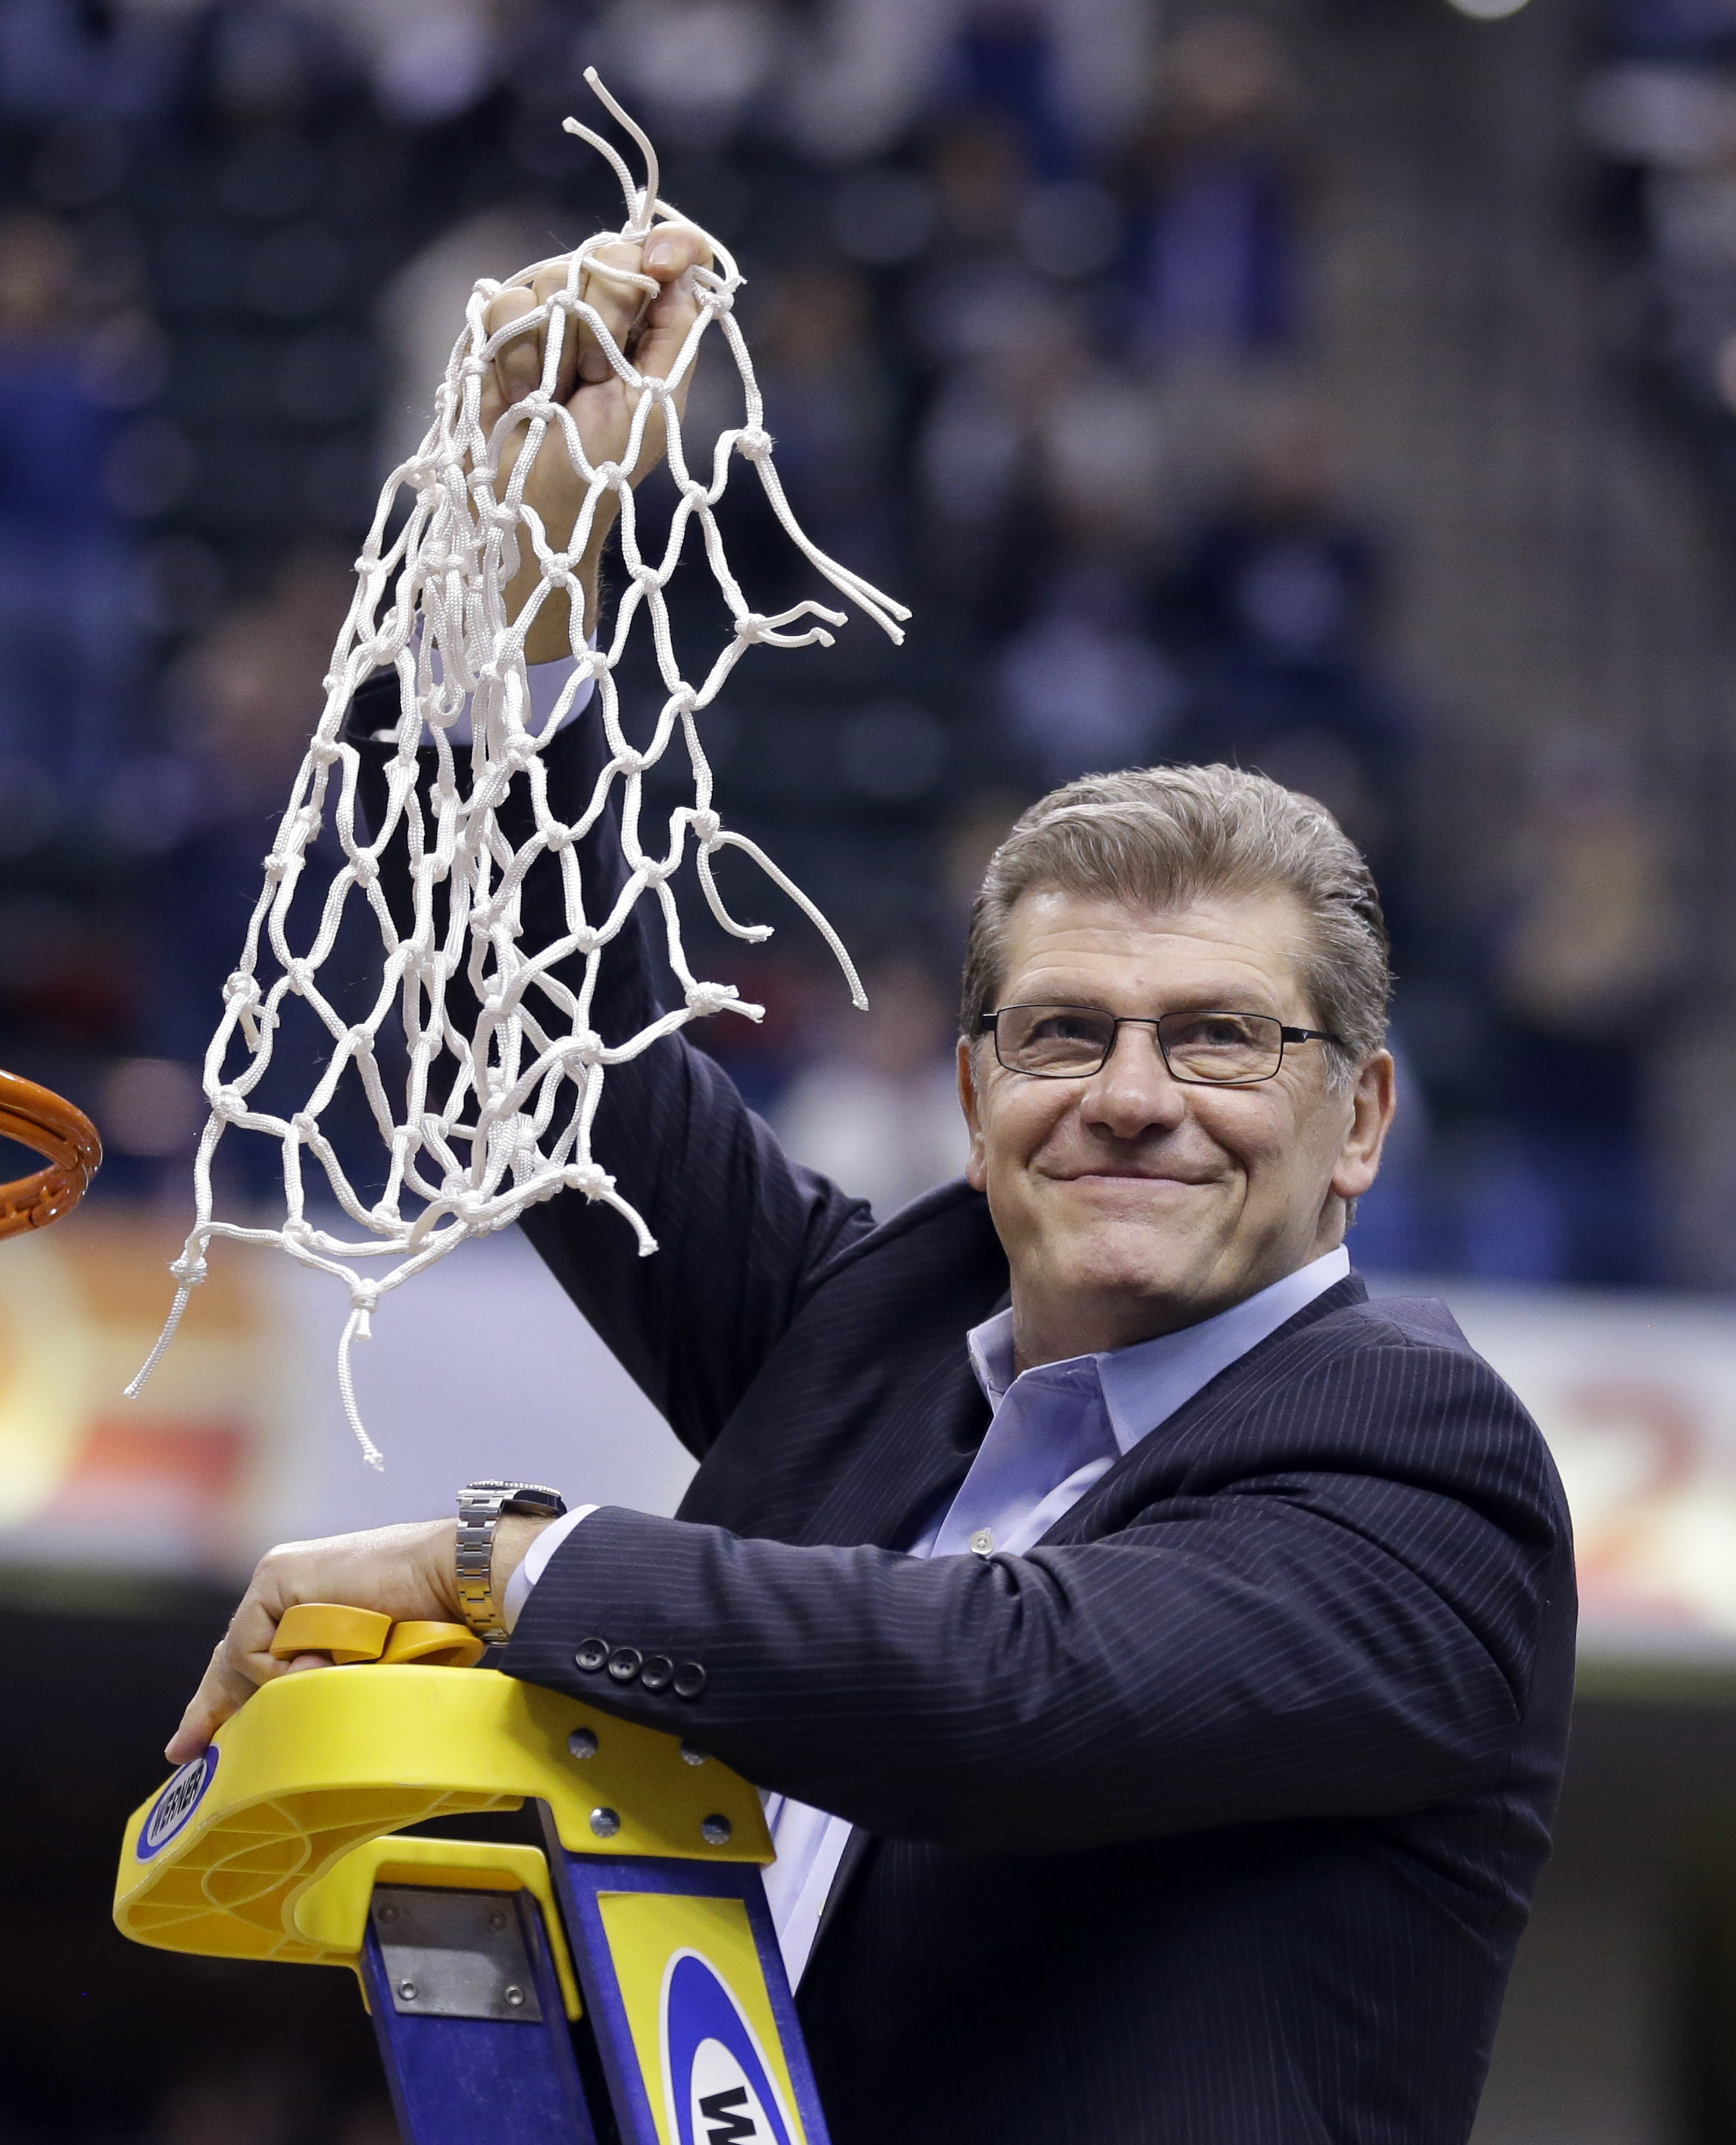 Connecticut head coach Geno Auriemmac celebrates by cutting down the net following the championship game against Syracuse at the women's Final Four in the NCAA college basketball tournament Tuesday, April 5, 2016, in Indianapolis. Connecticut won 82-51. (